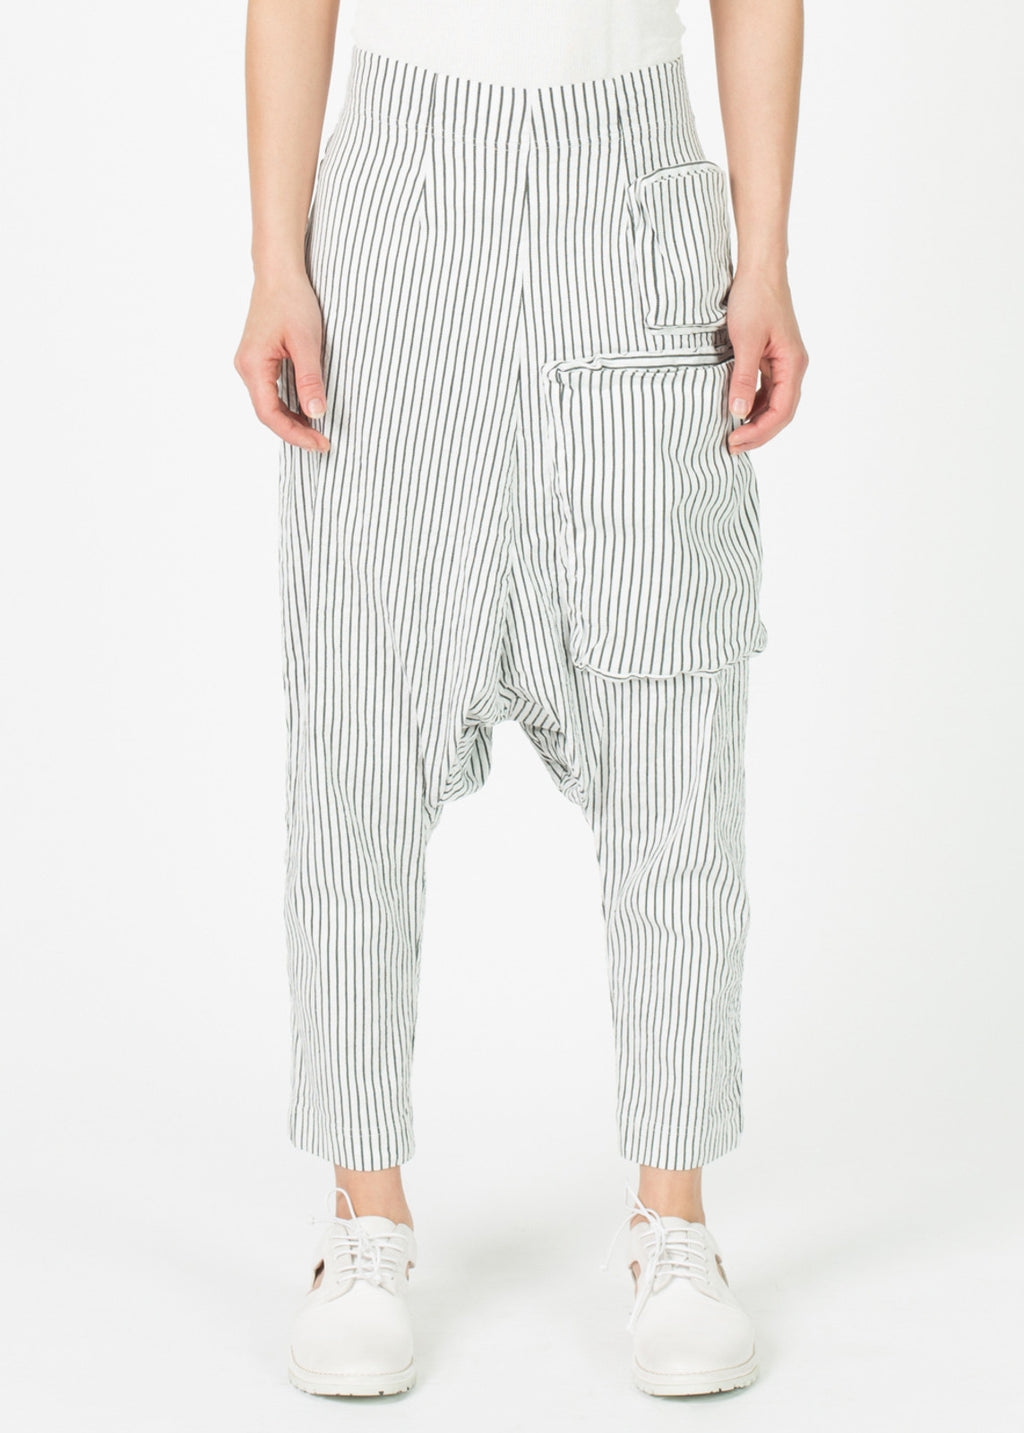 Two Pocket Harem Pants